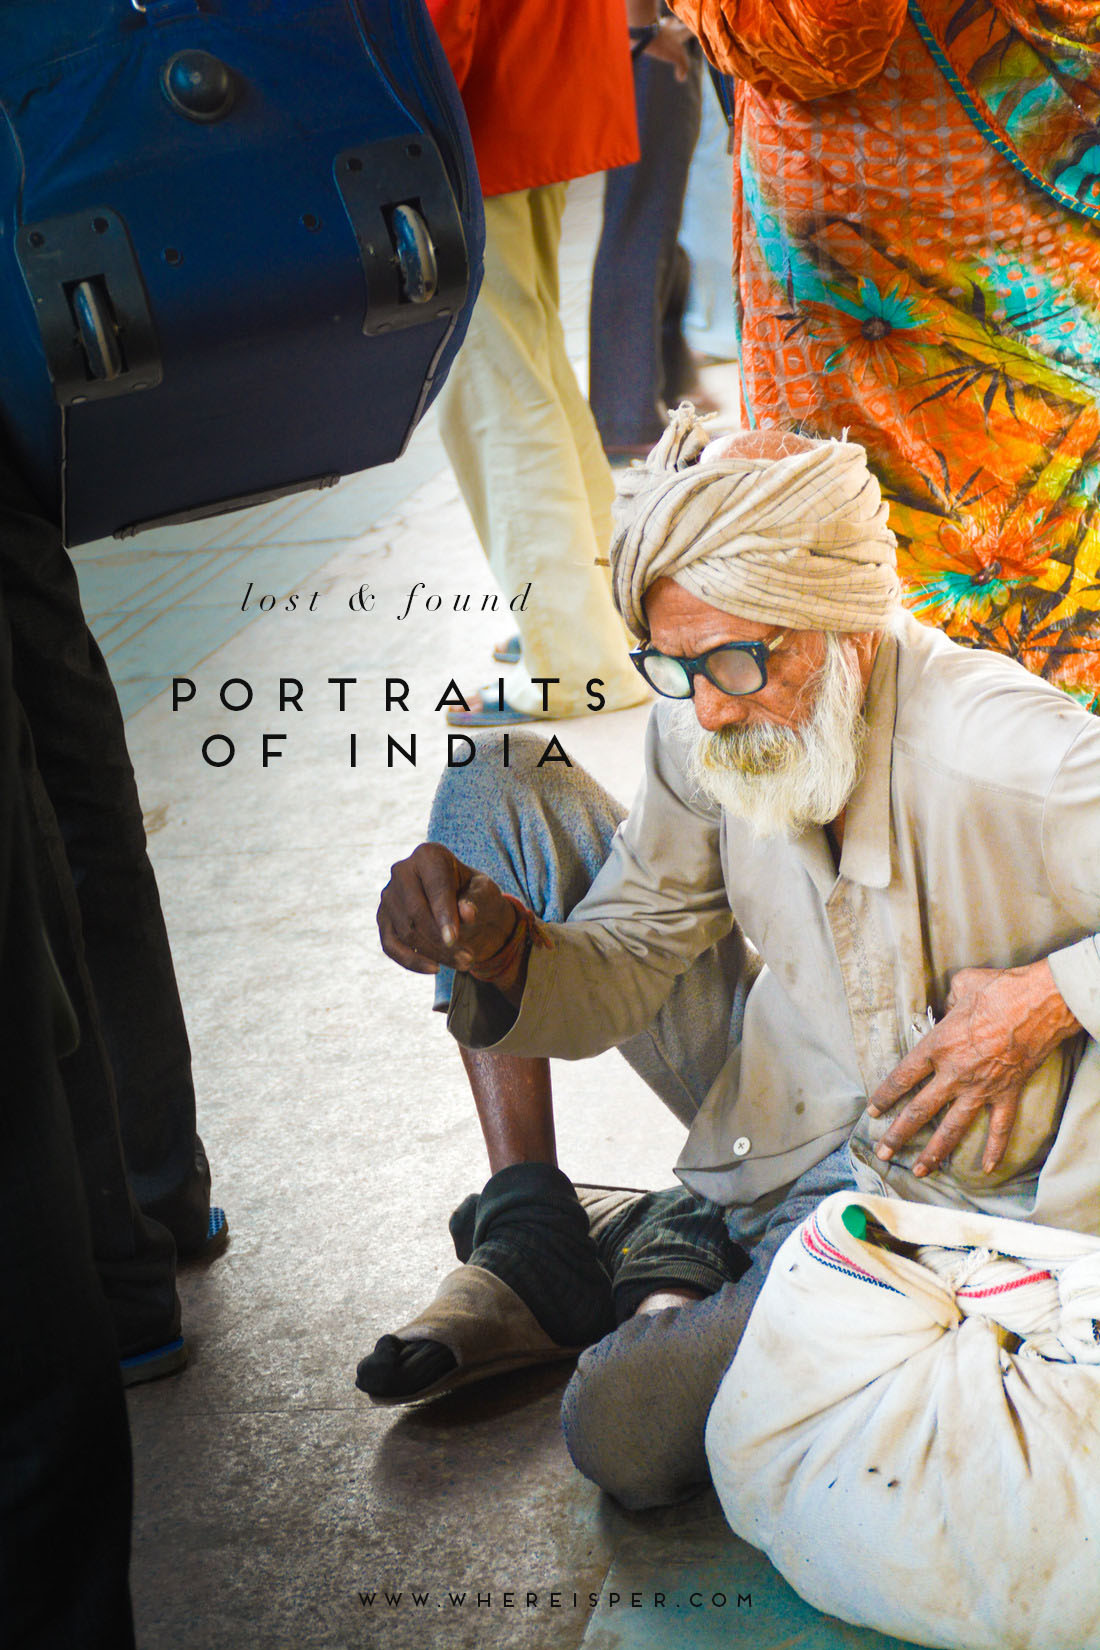 Lost and Found Portraits of India WHERE IS PER